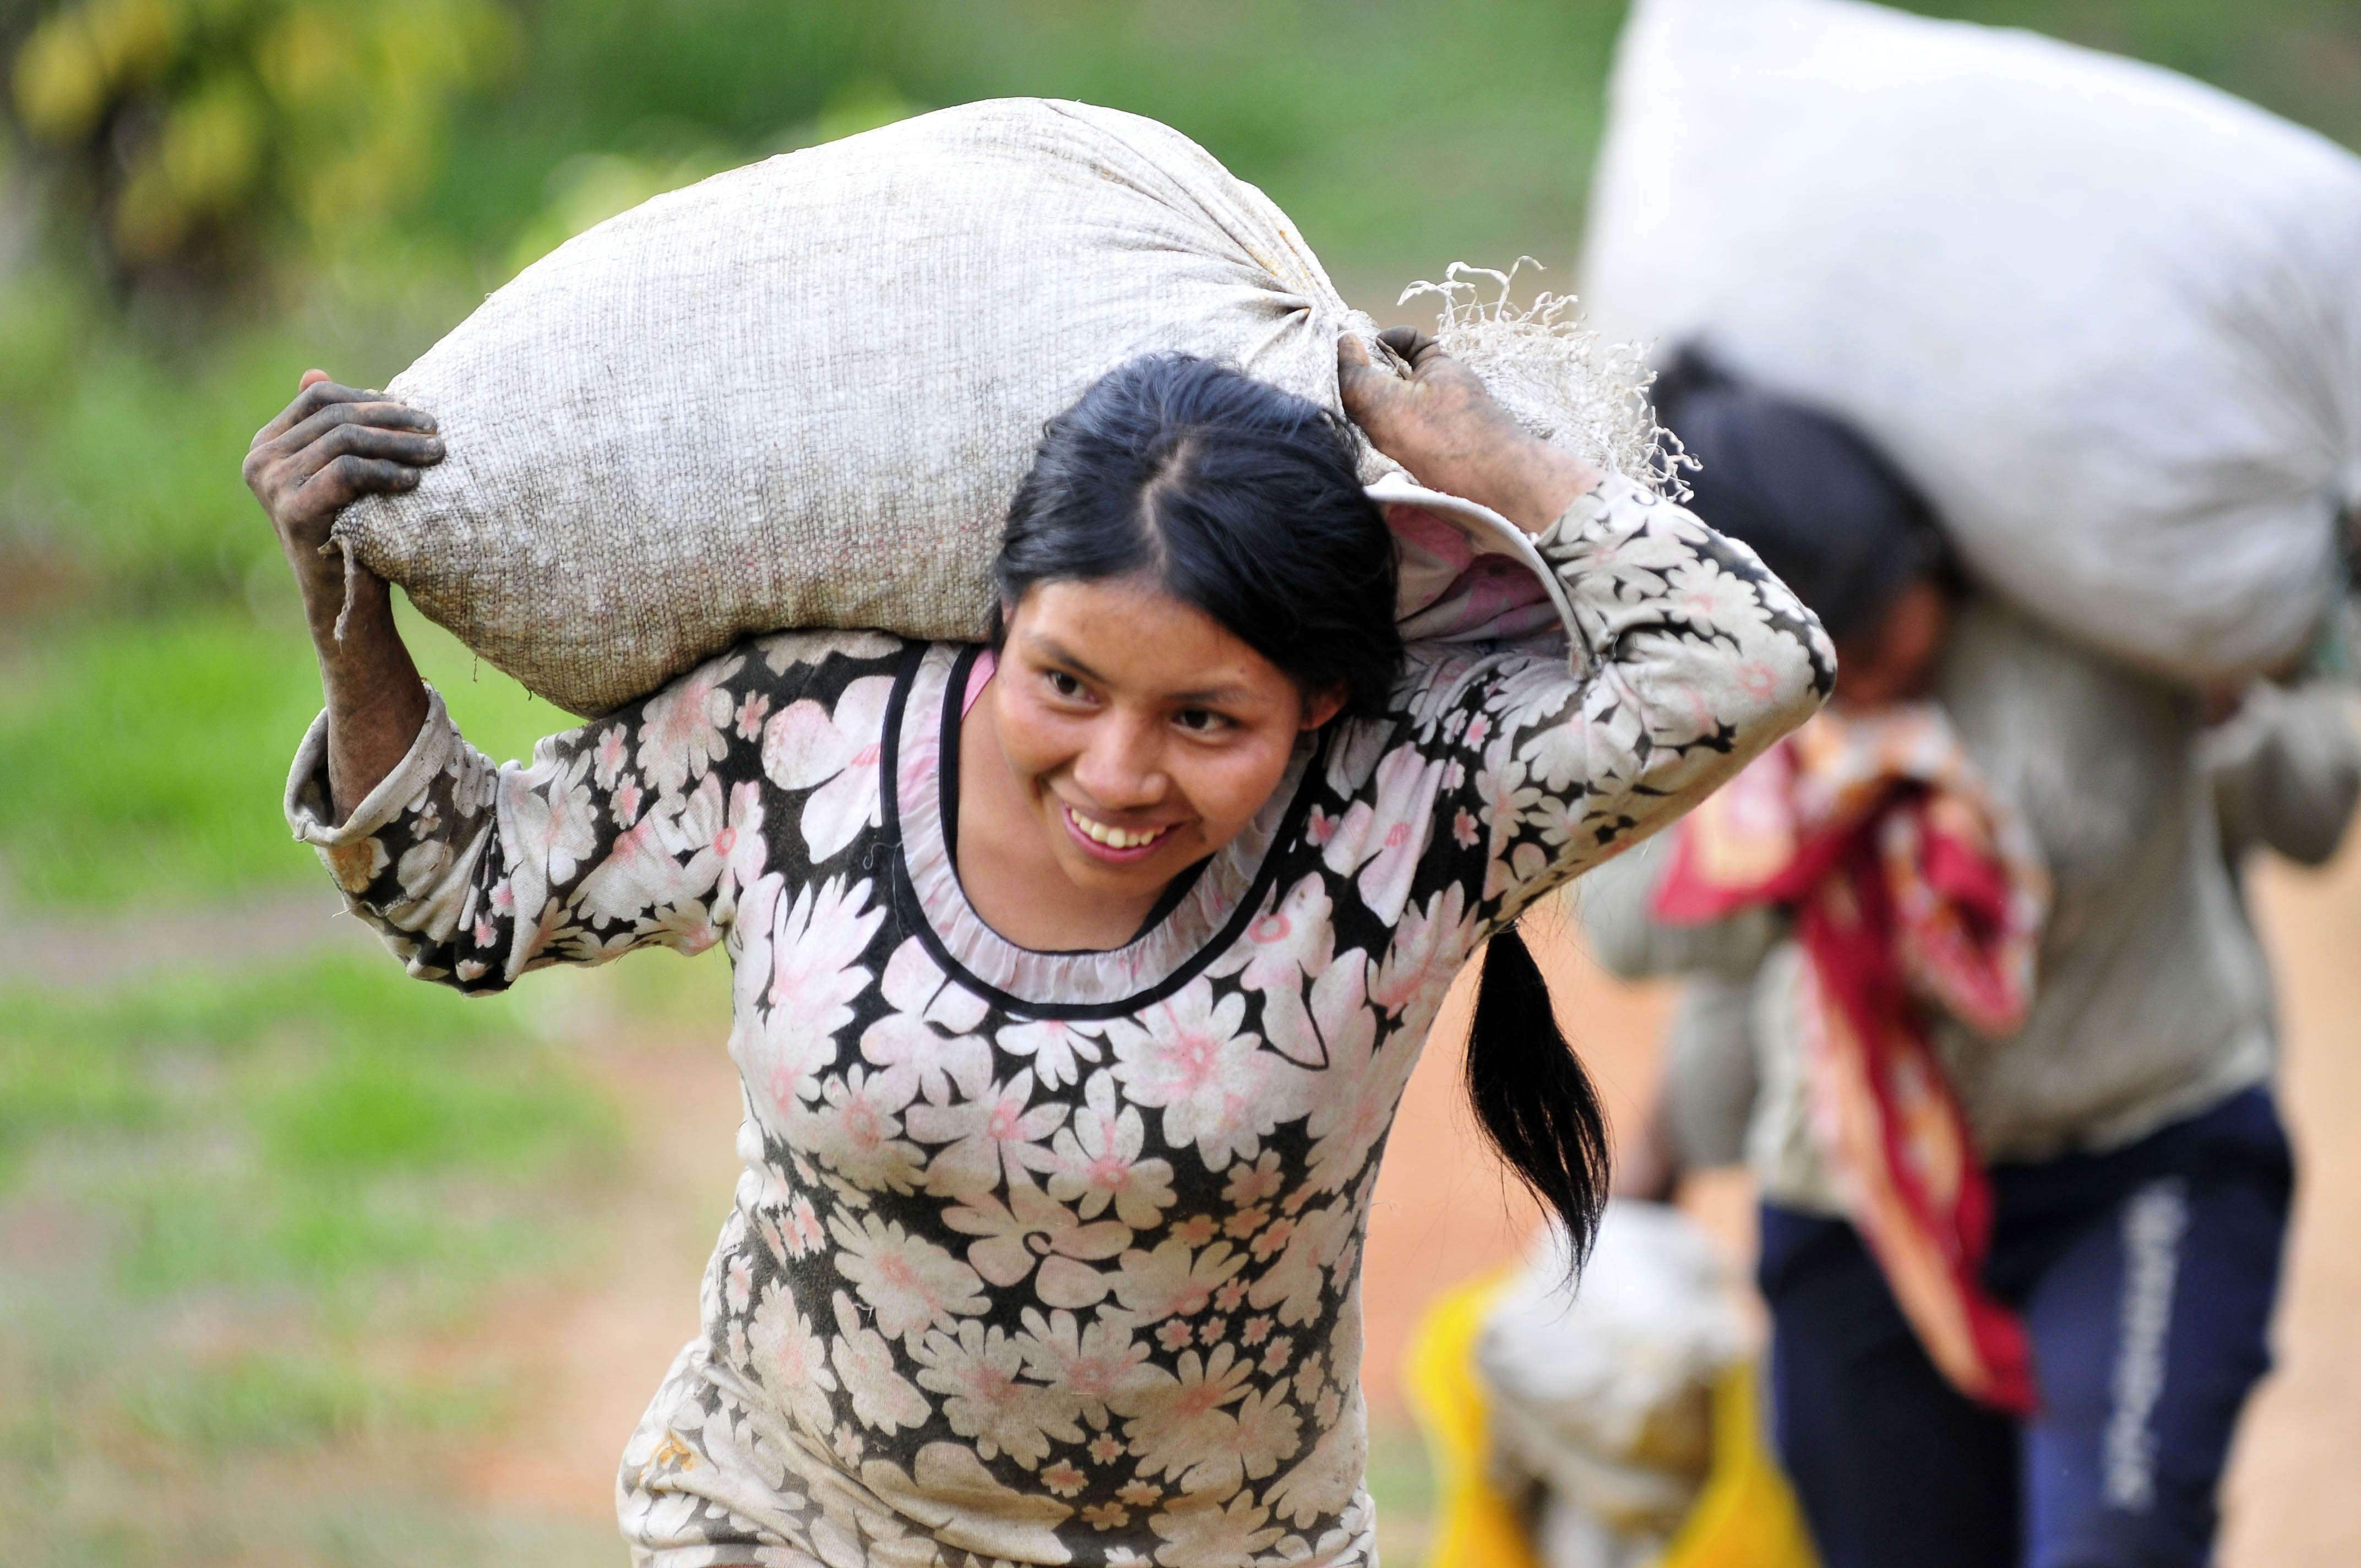 Farm workers carry sacks of coffee beans in Colombia's southwestern Cauca department